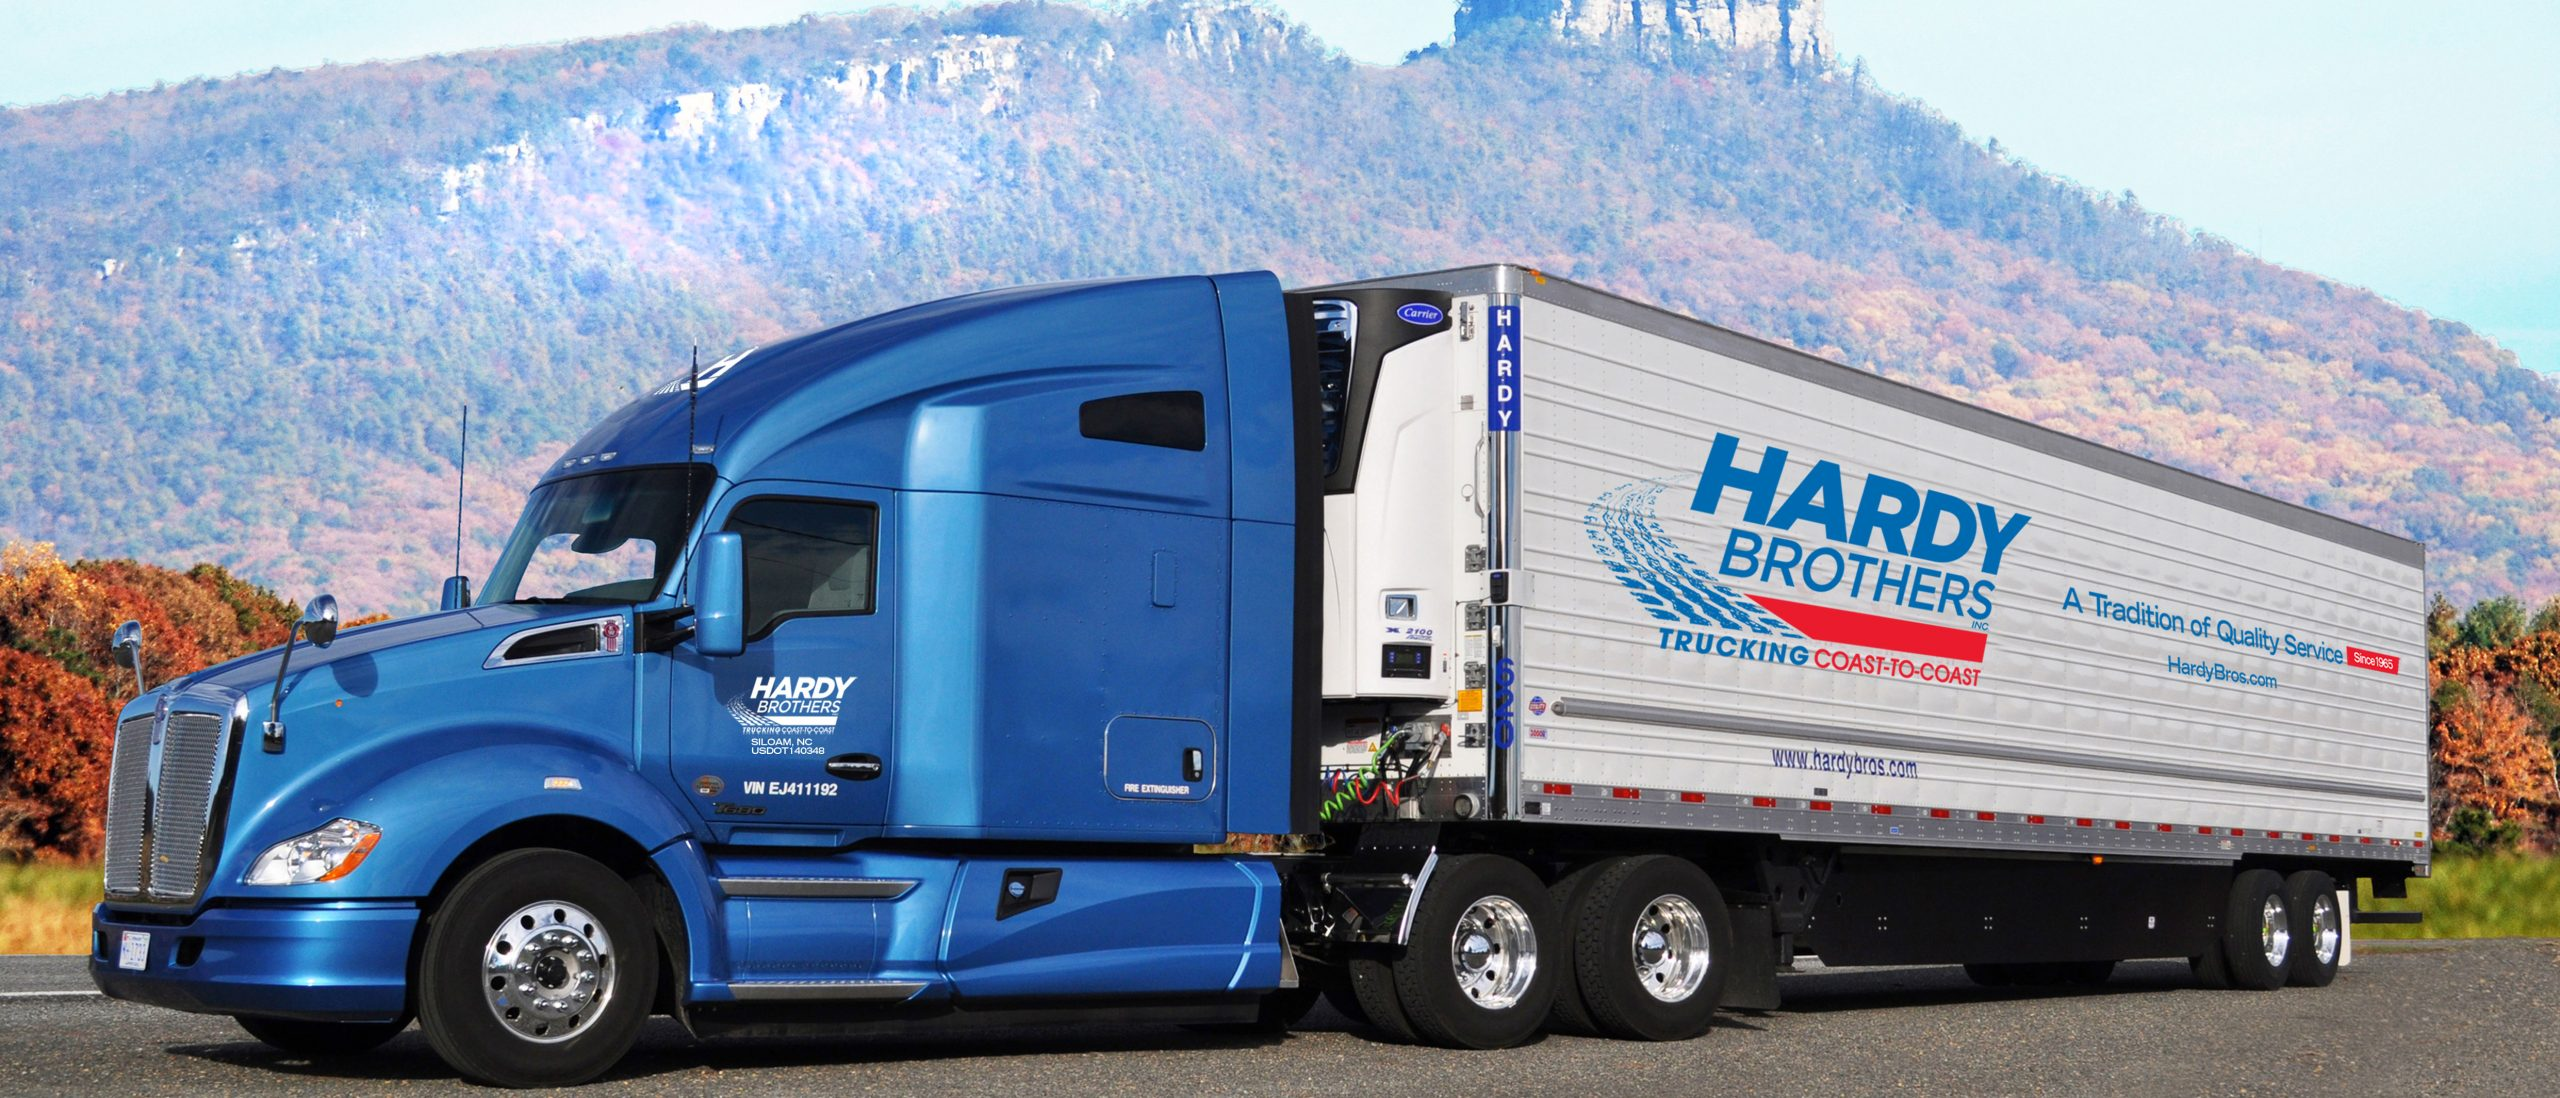 Hardy Brothers Truck